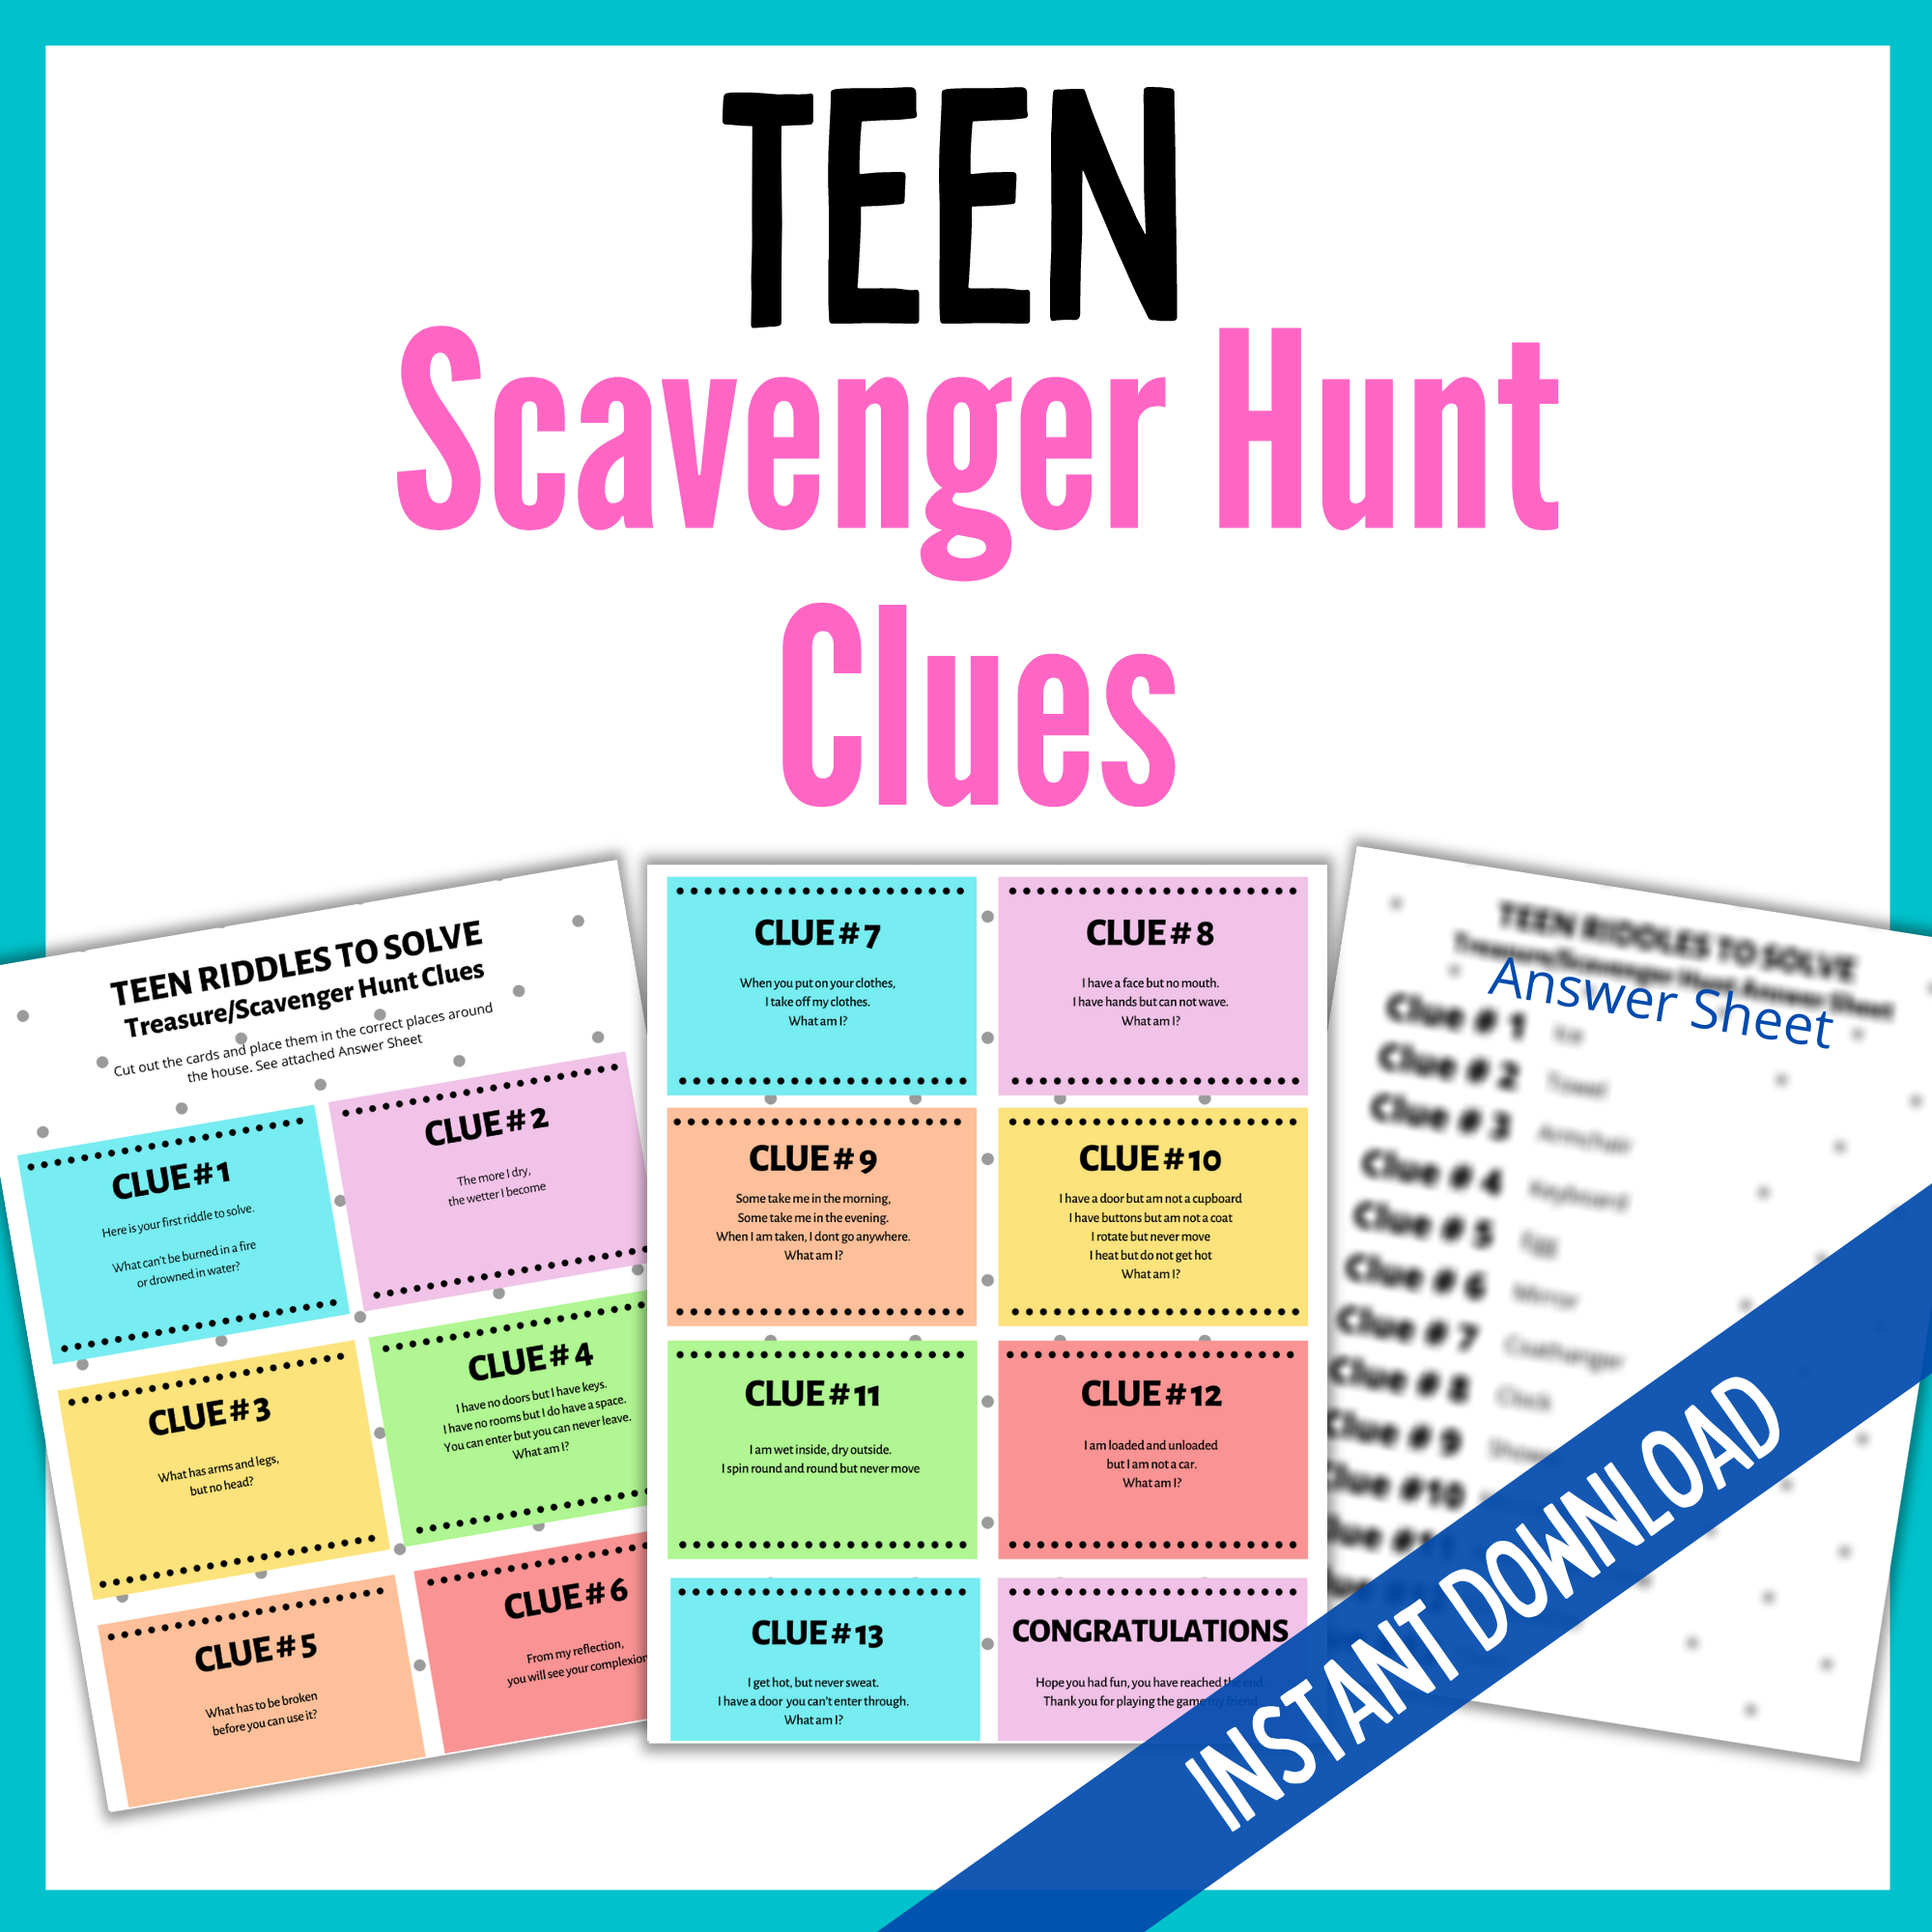 Teen Treasure Hunt Clues